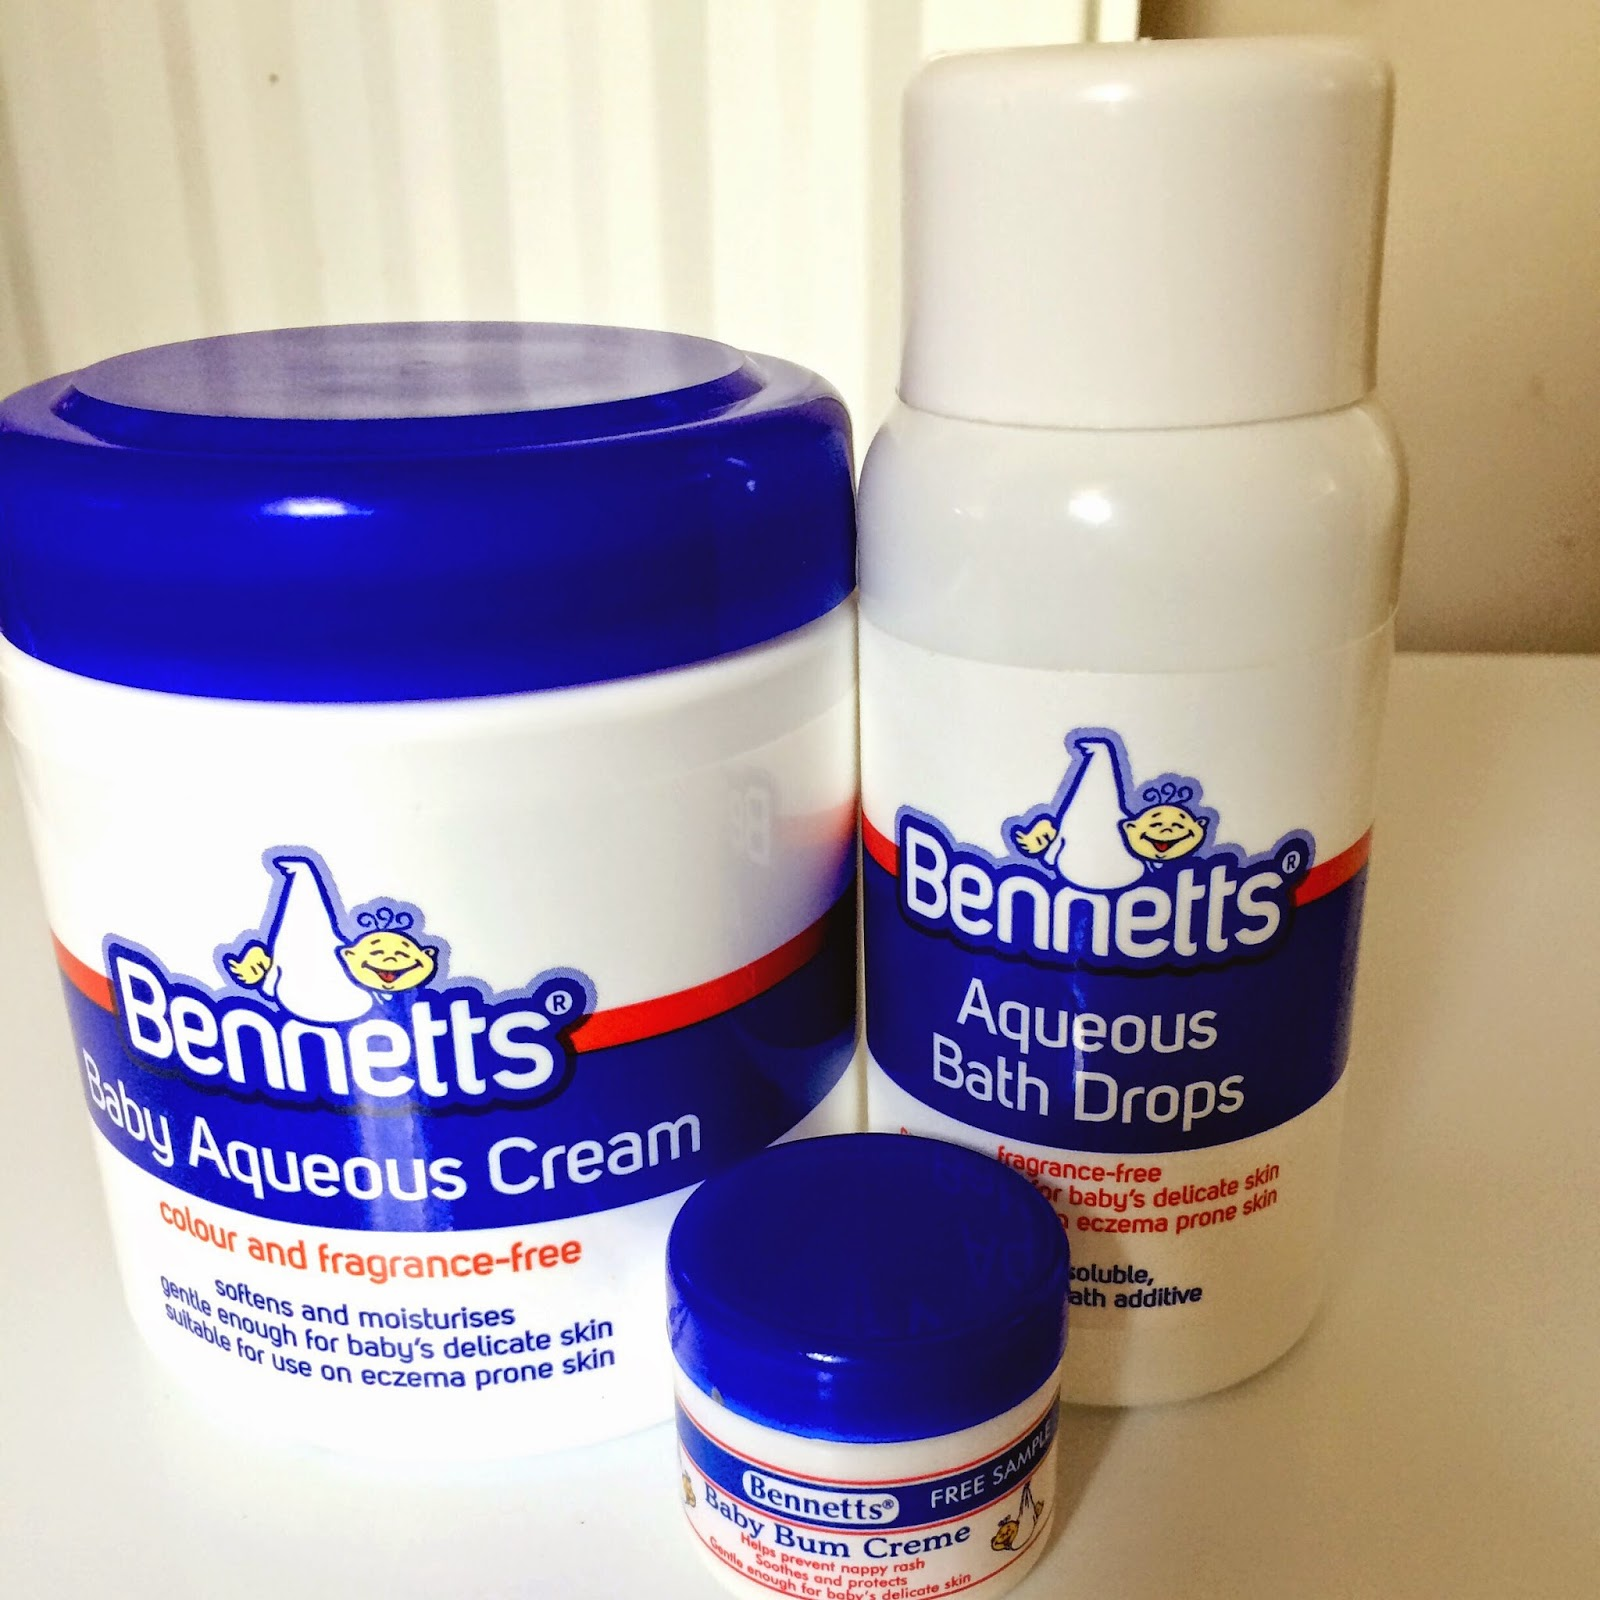 Bennetts skincare baby products